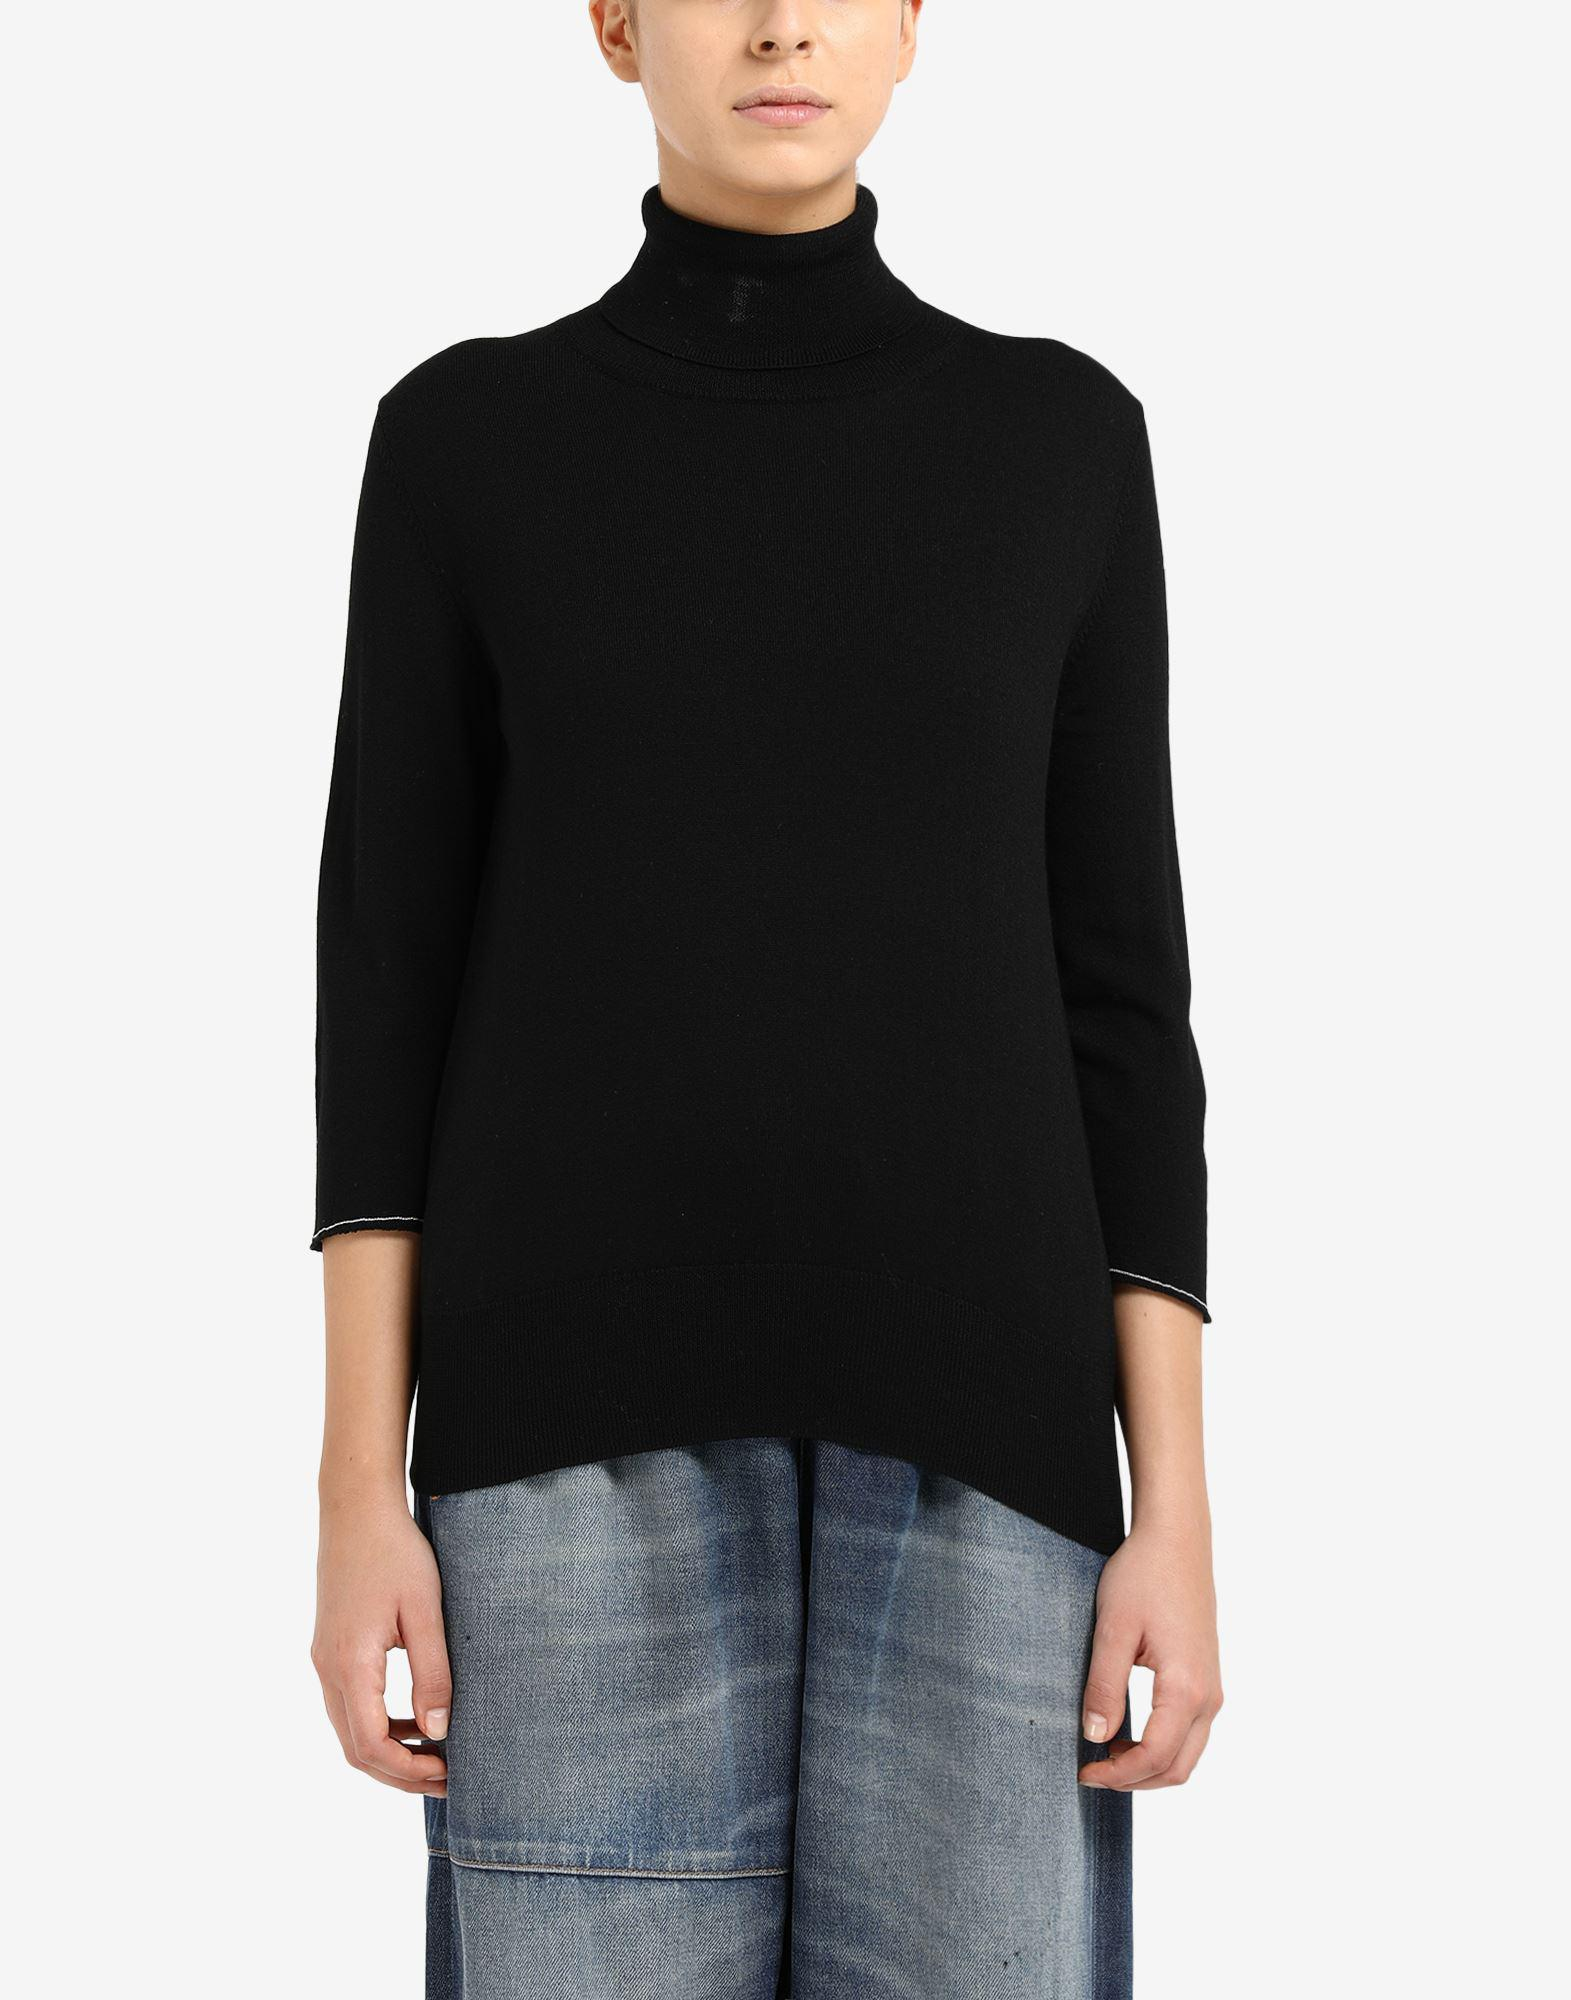 Cropped elbow patch sweater 3